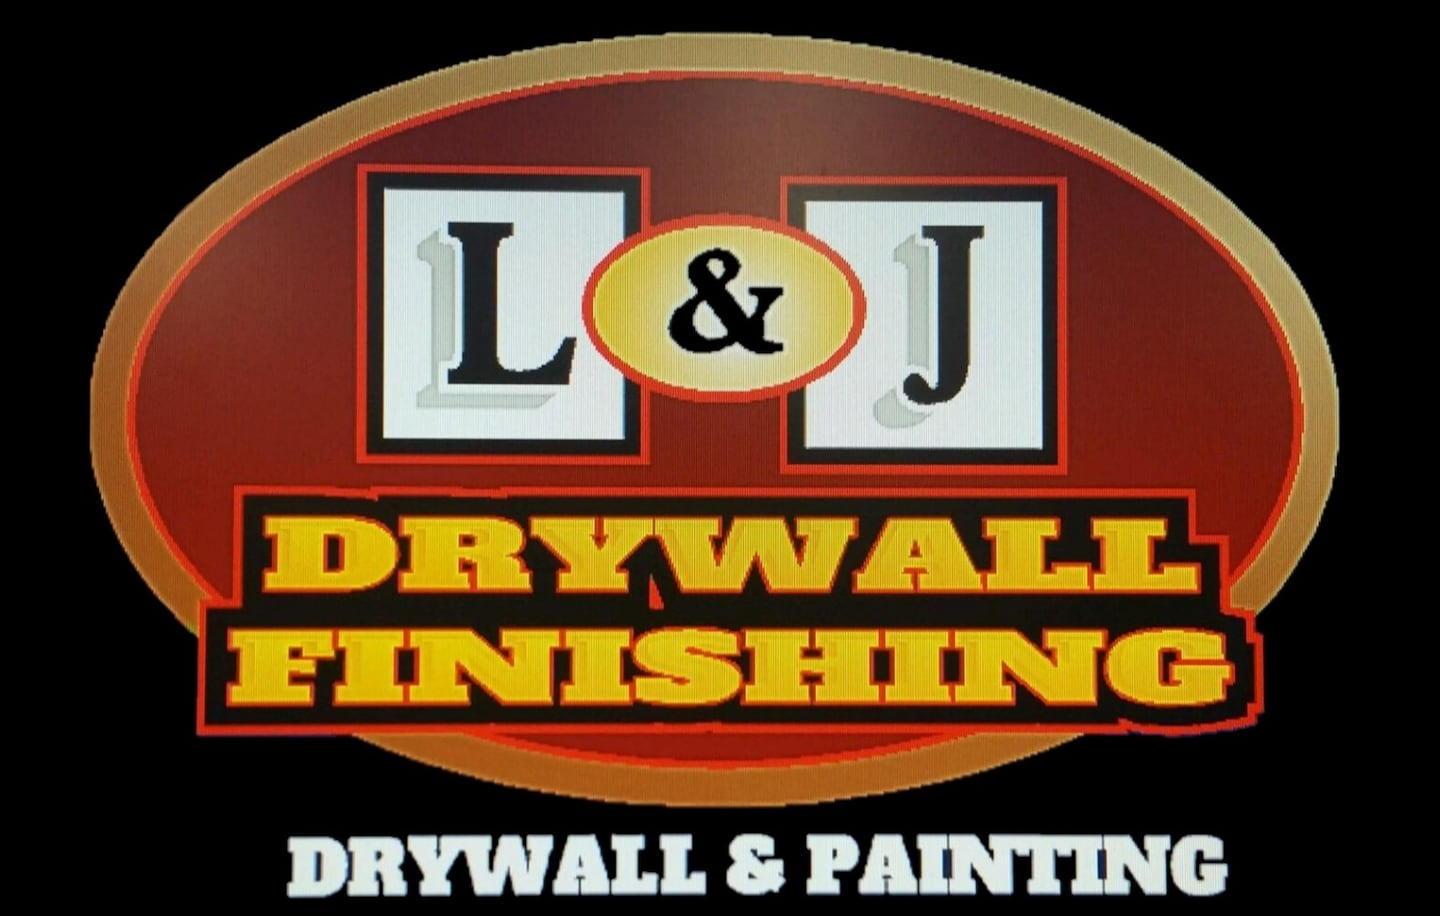 L & J Drywall Finishing